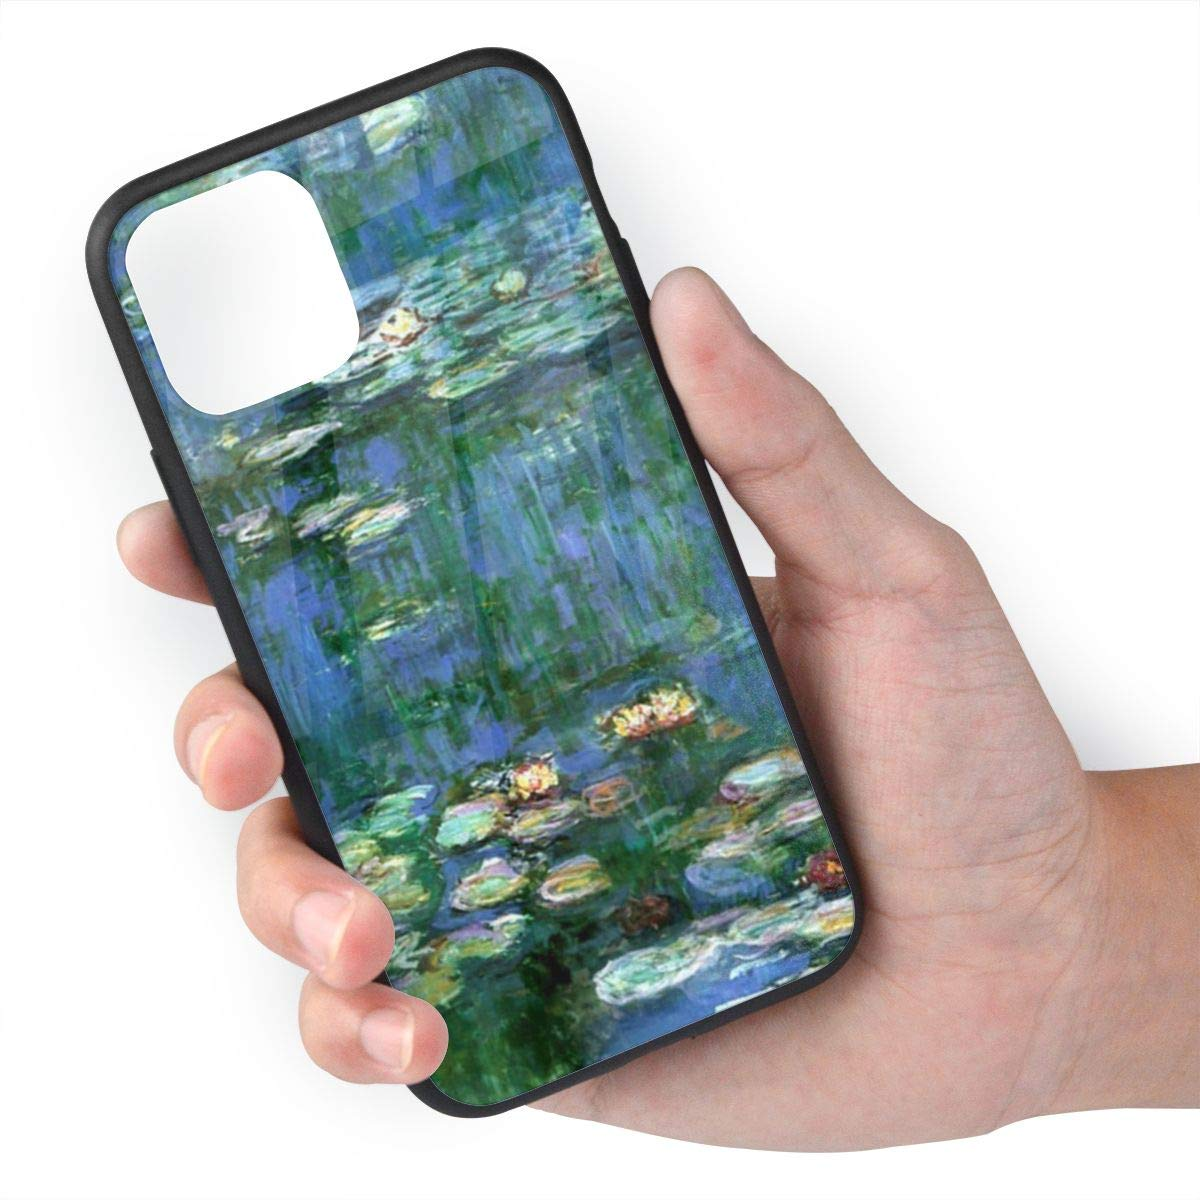 TMVFPYR Lilies Claude Monet Water Lilies Case for iPhone 11 Pro, TPU Soft-Edge Scratch-Resistant Protective Hard Case with Bullet-Proof Glass